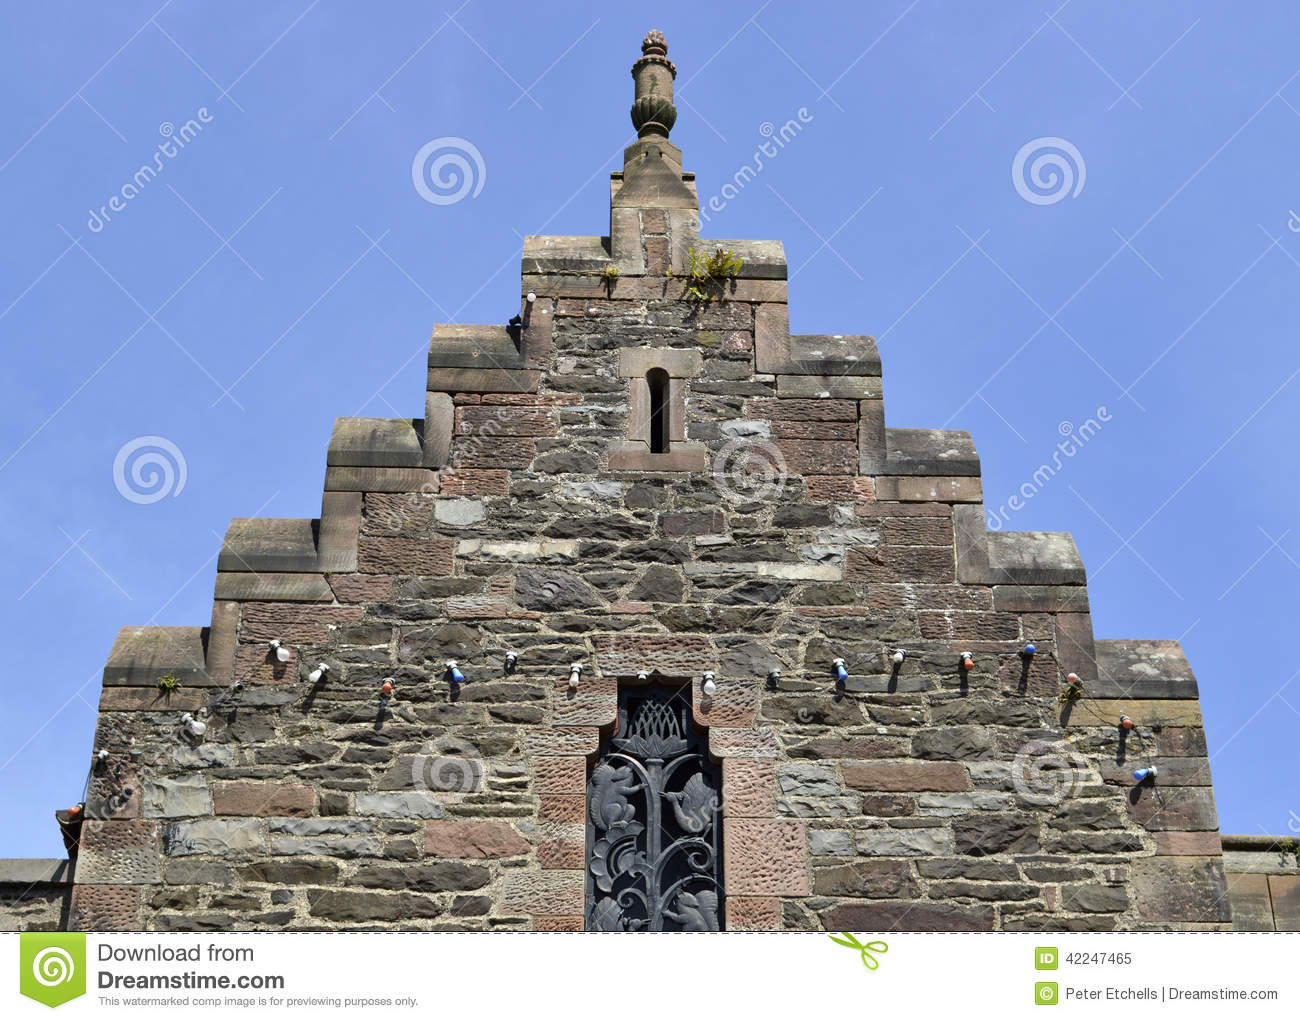 Crow Stepped Roof In Lingen In Germany Stock Photo.